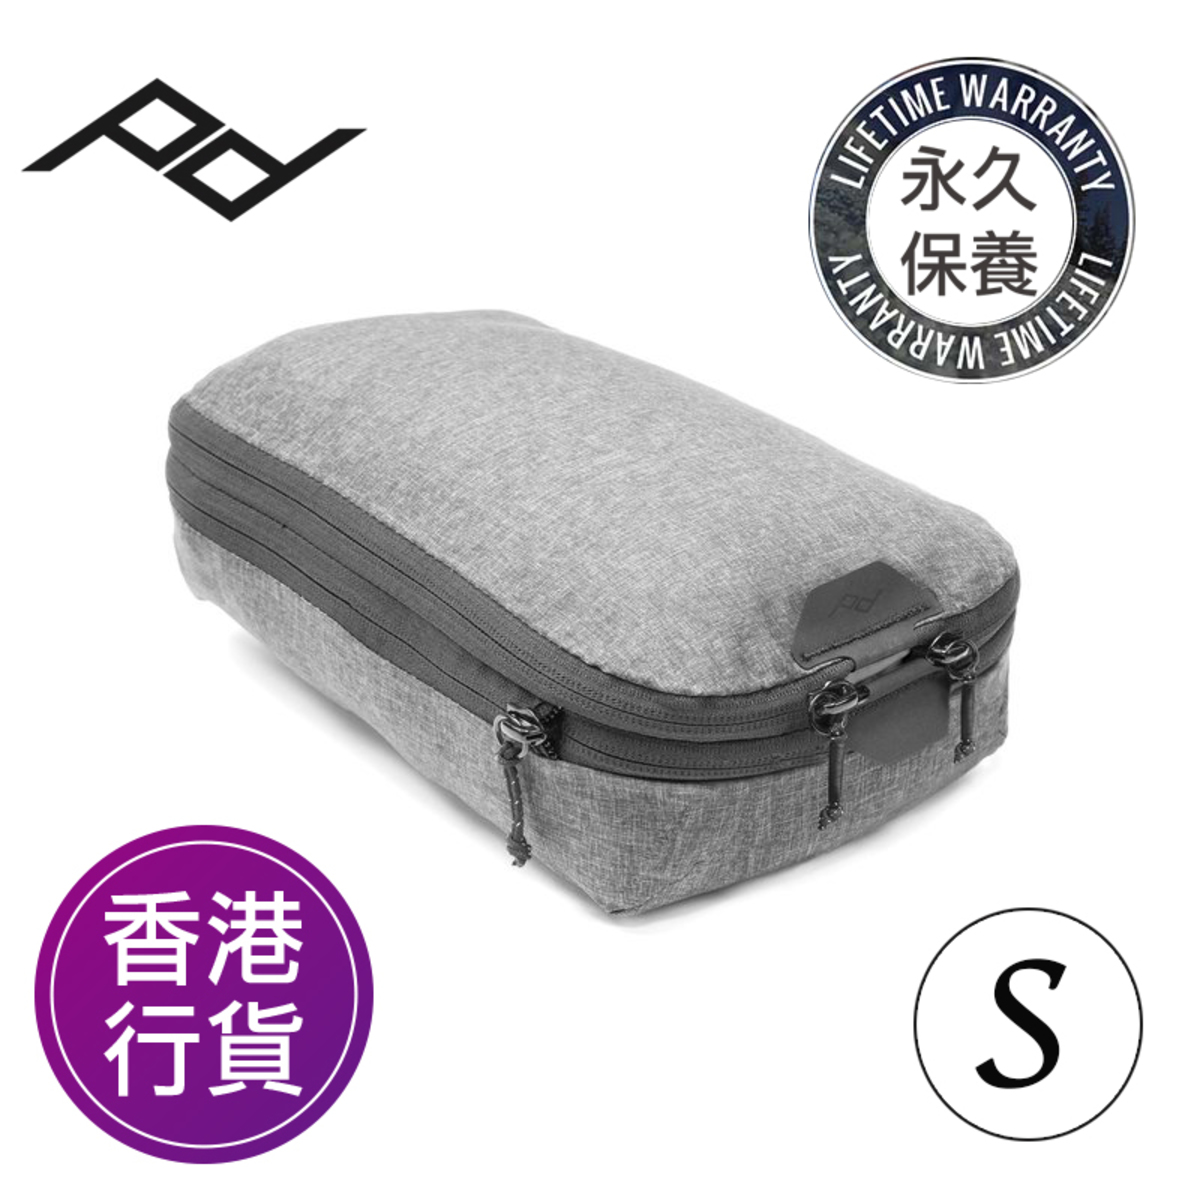 PACKING CUBE  - 9L Small